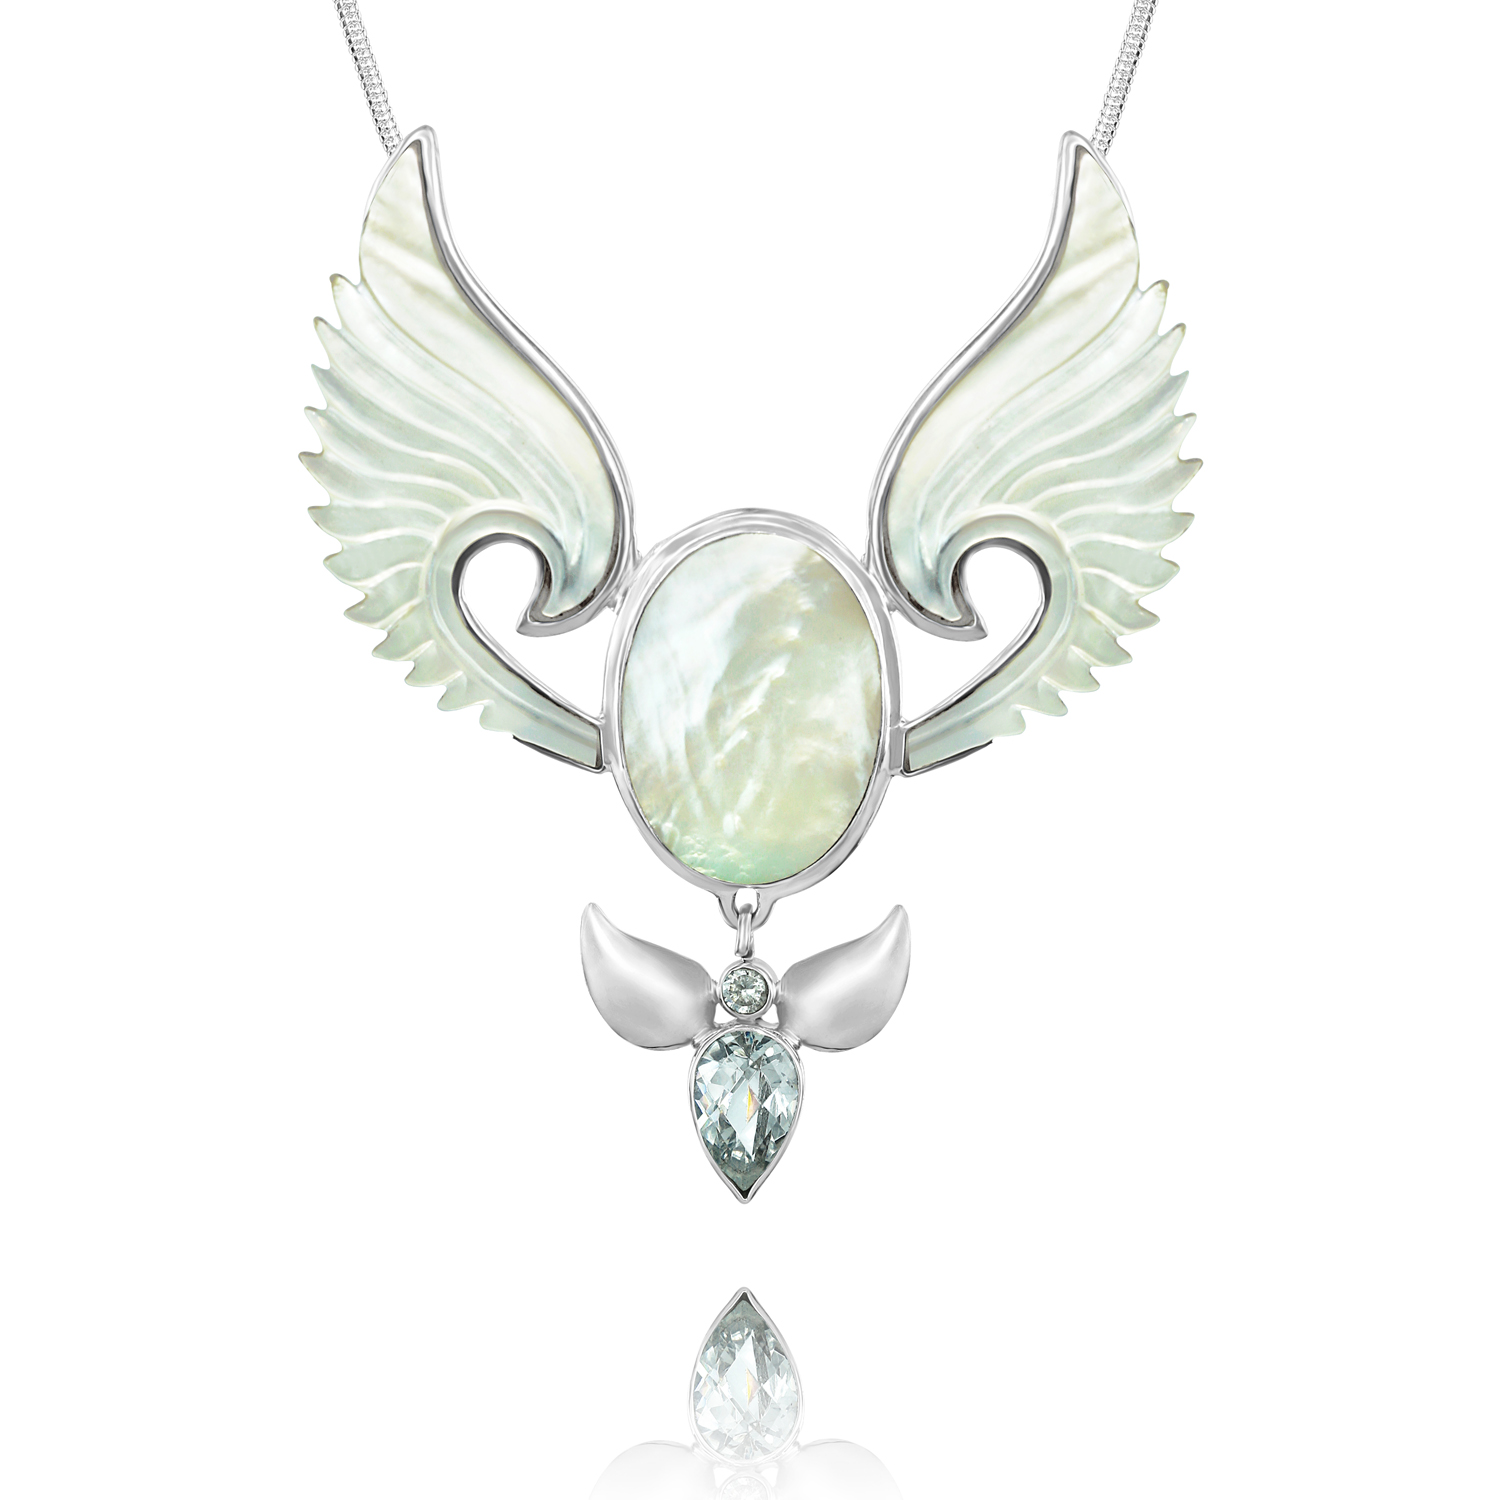 Divine feminine angel necklace angel pendant by angel jewelry 11 fascinating facts about angels aloadofball